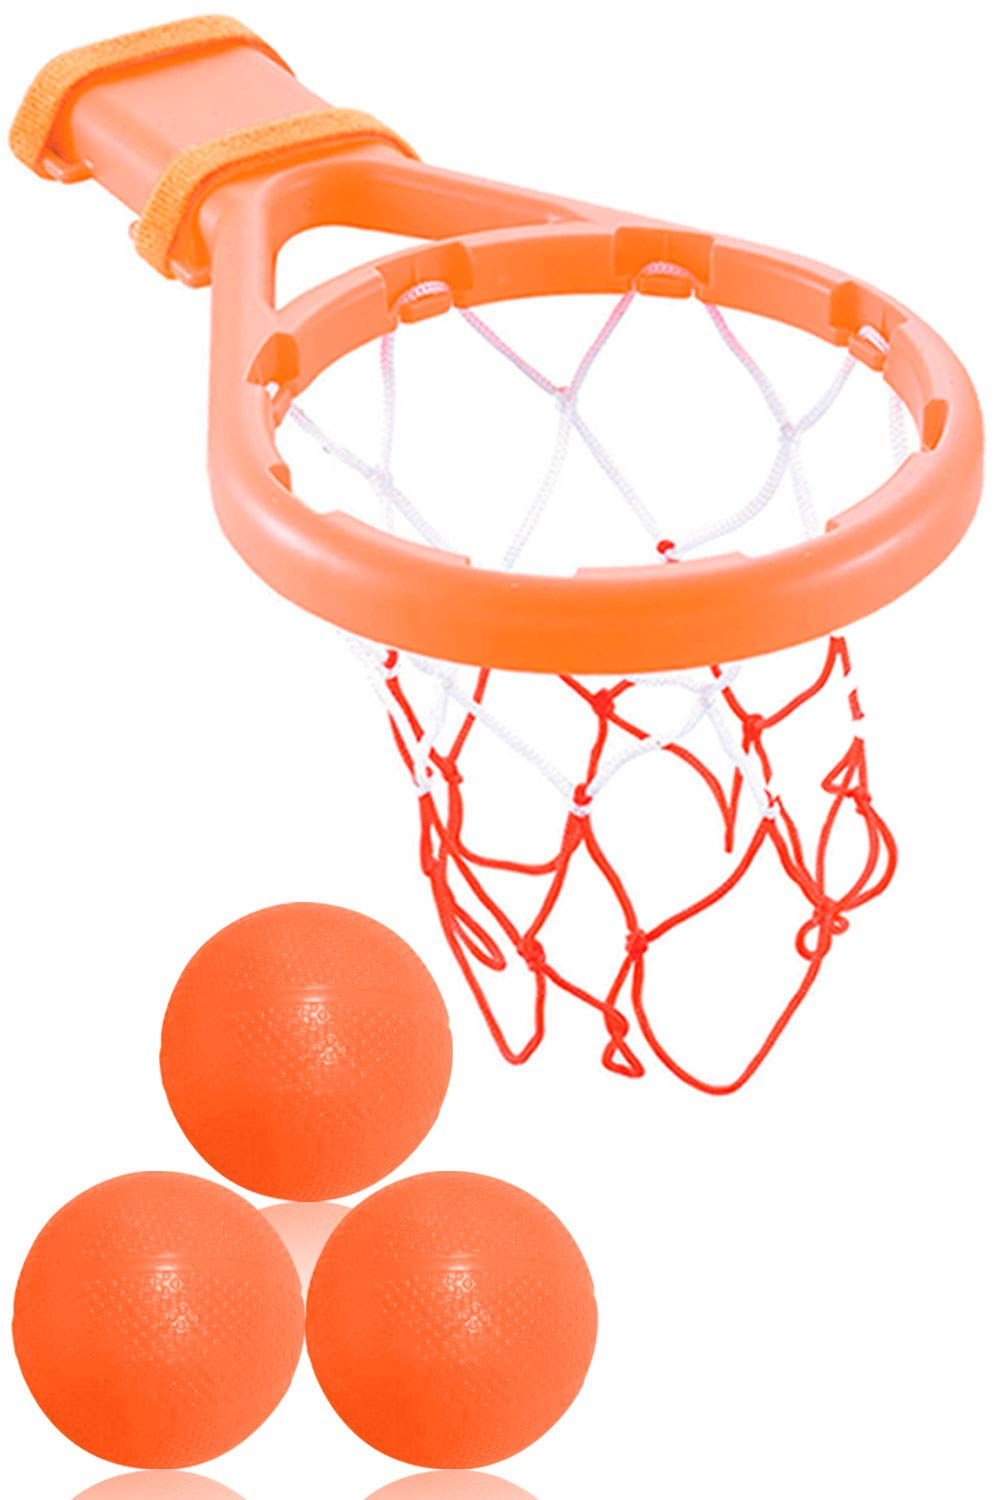 Bees & Me Bath Toy Basketball Hoop